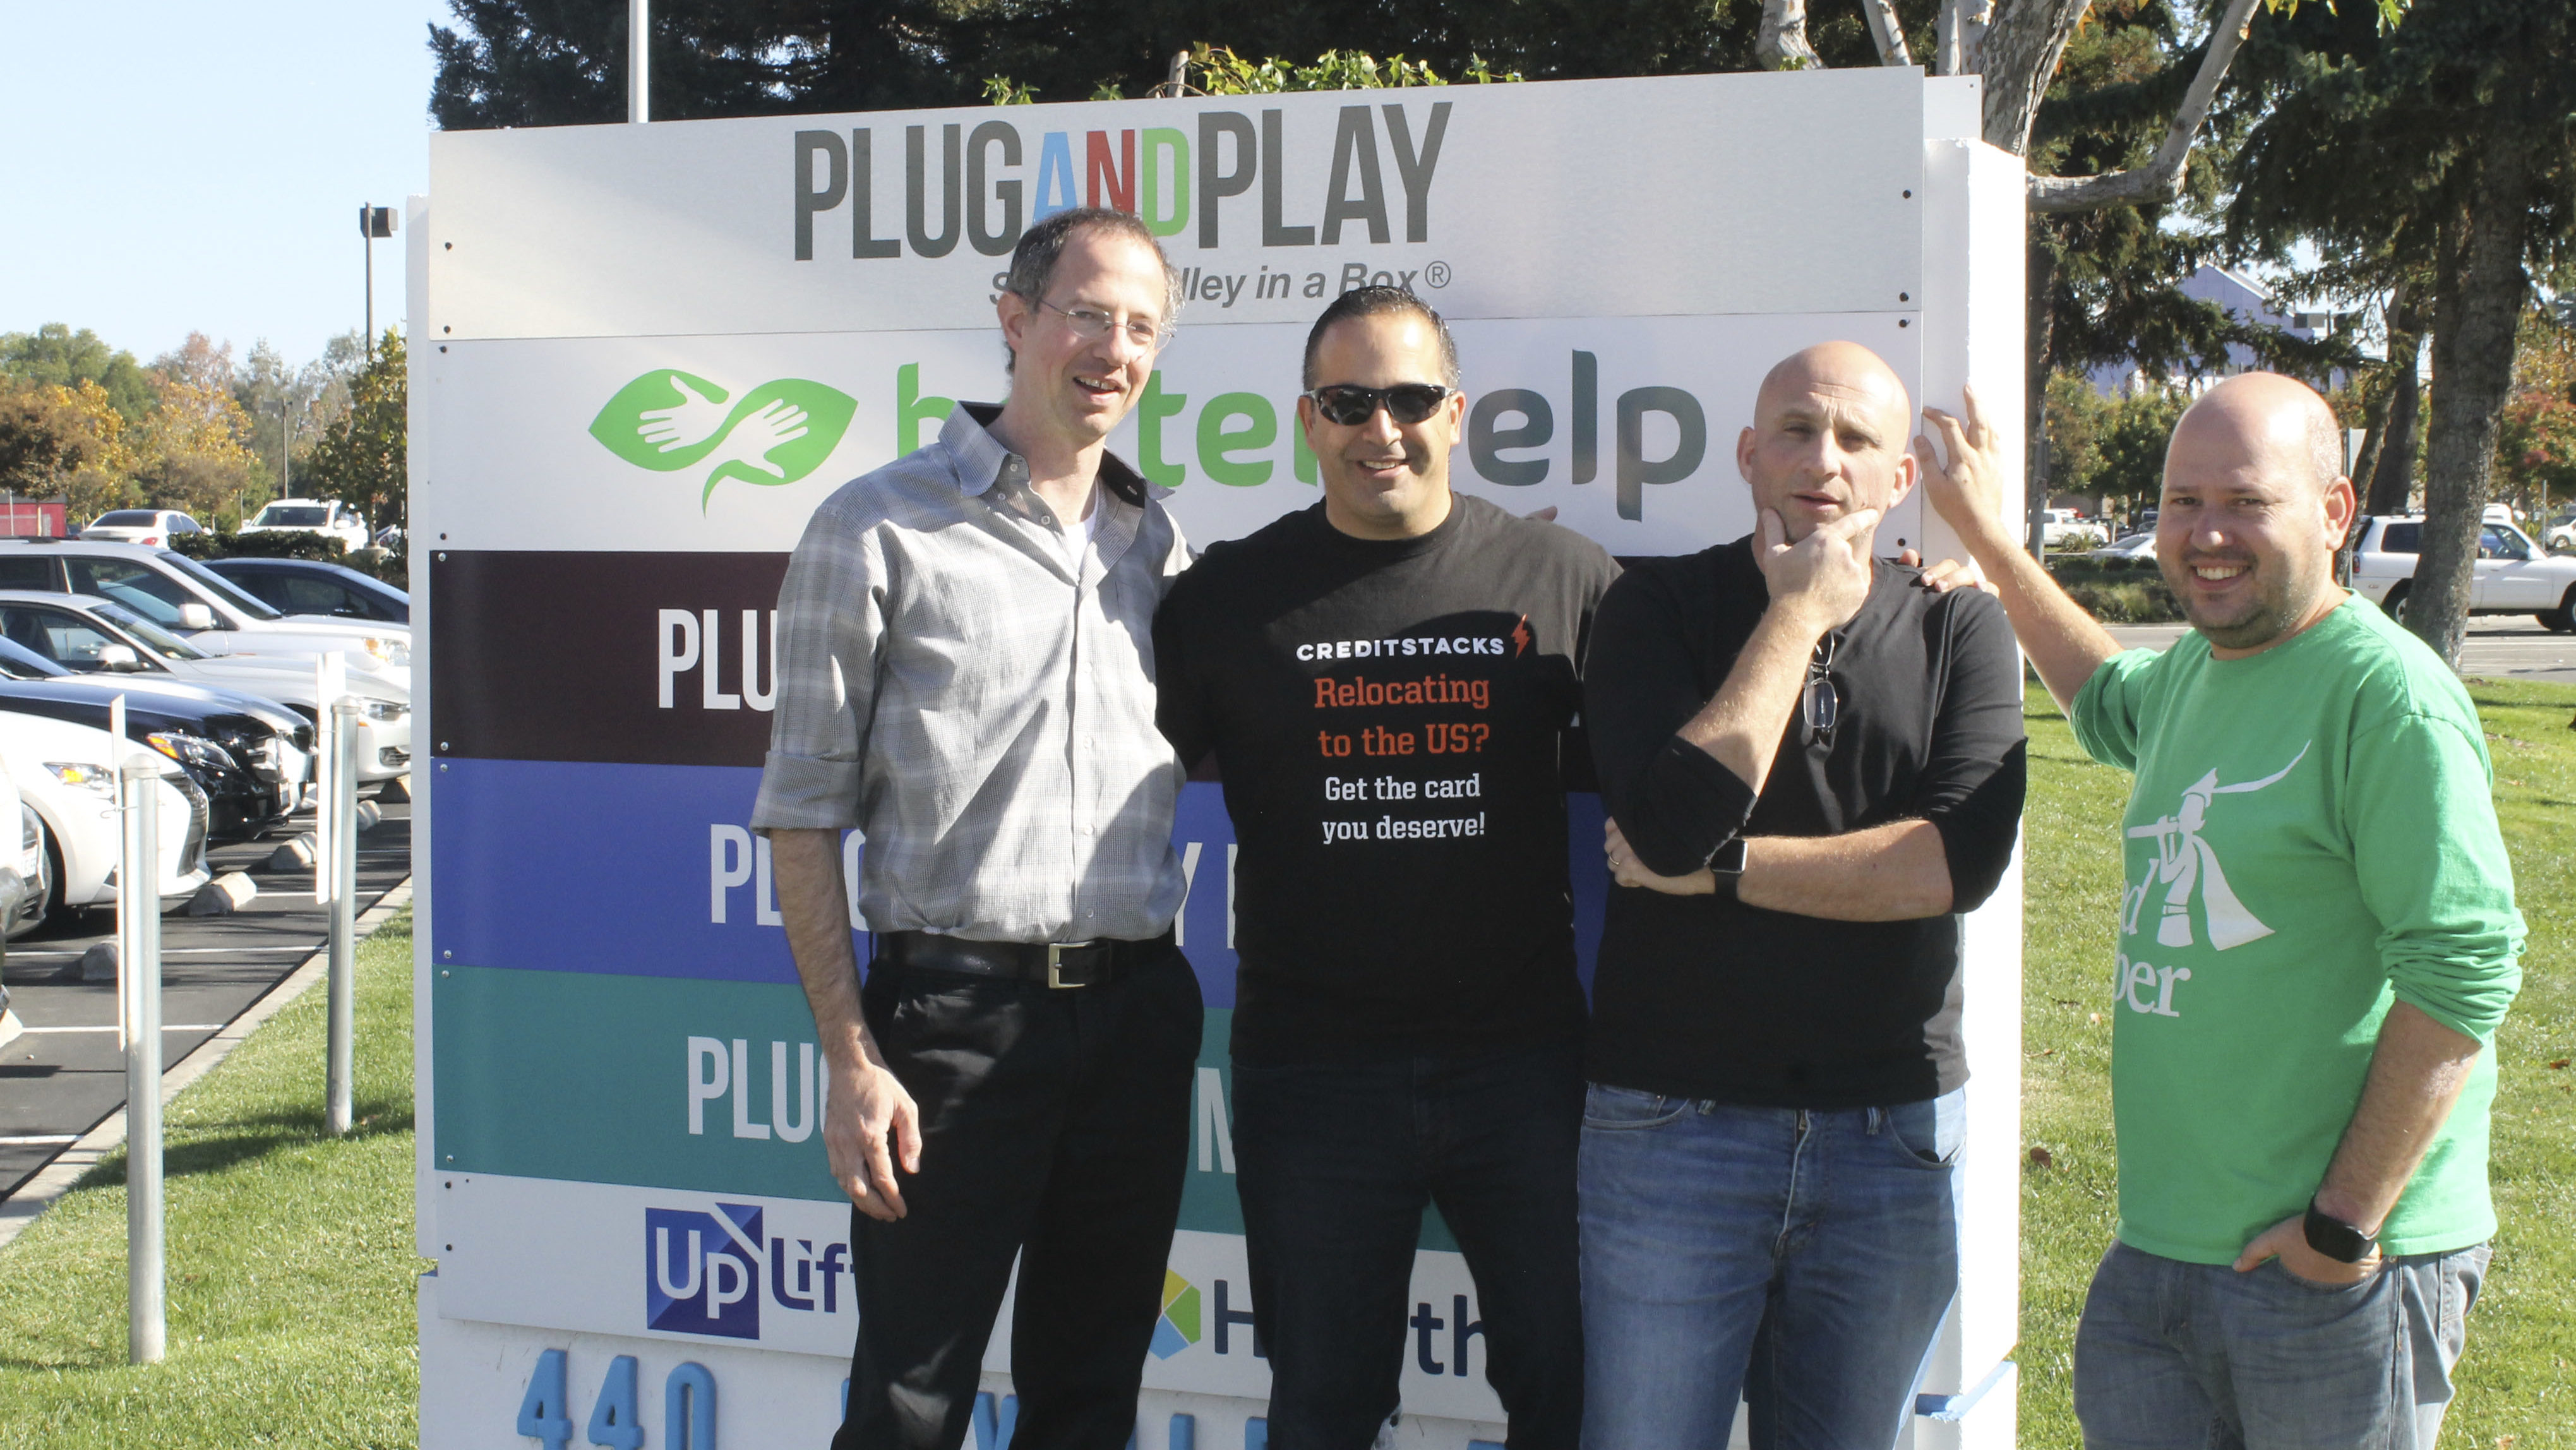 Israelis Yuval Machlin, Kfir Eyal, Daniel Shaked and Alon Matas (from left) in front of Plug n' Play, the Silicon Valley incubator where they work. (Photo/Ben Sales)